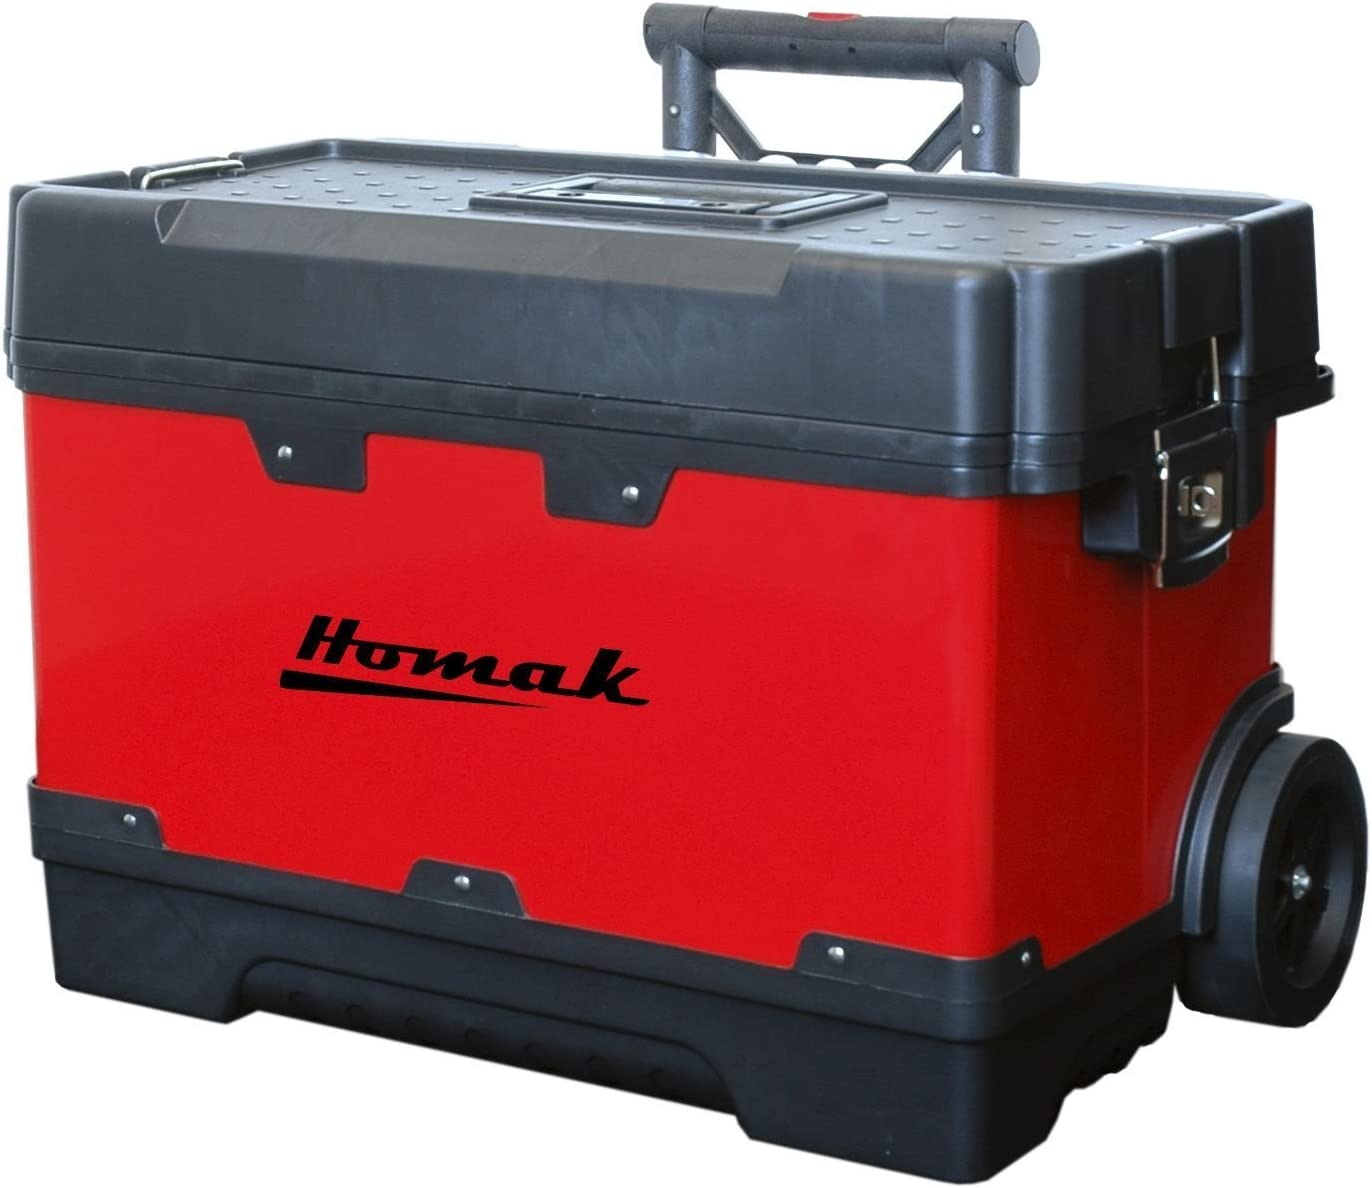 Homak 23-1 4-Inch Metal and Plastic Roll Away Toolbox with Retractable Aluminum Handle, Red, RD00423002